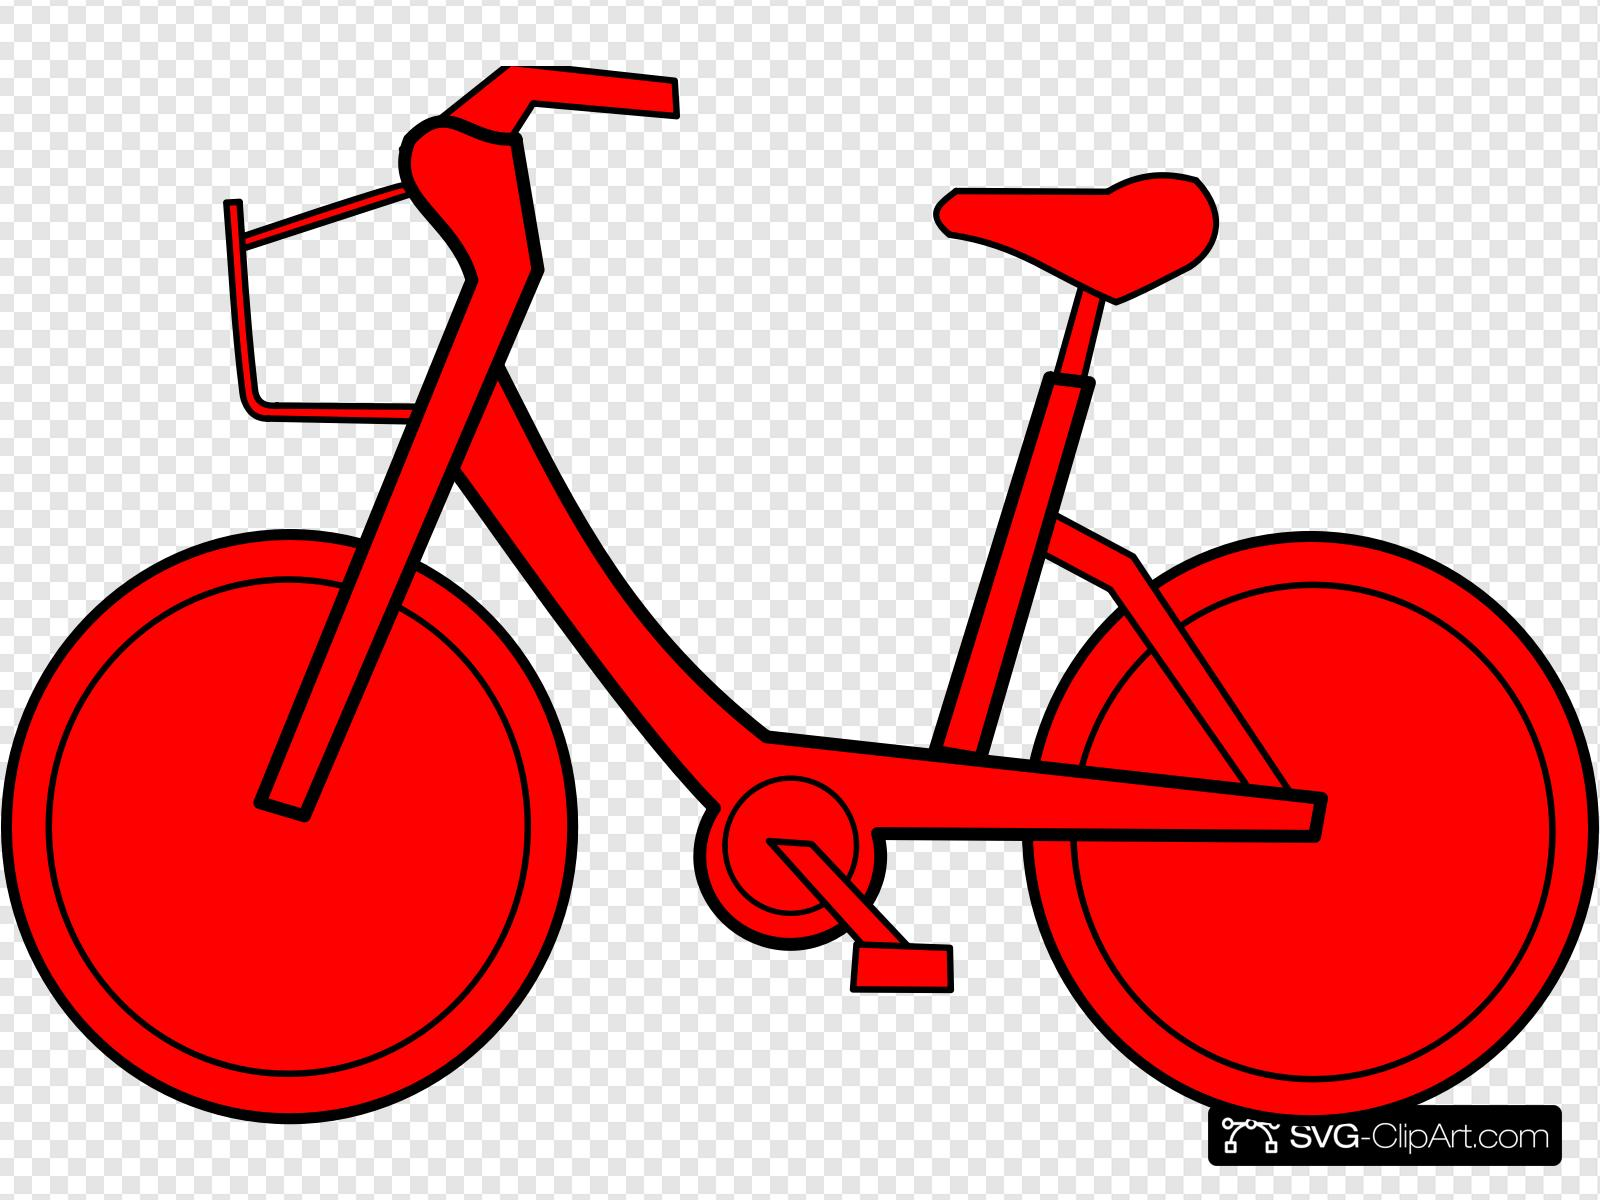 Bicyclette Clip art, Icon and SVG.